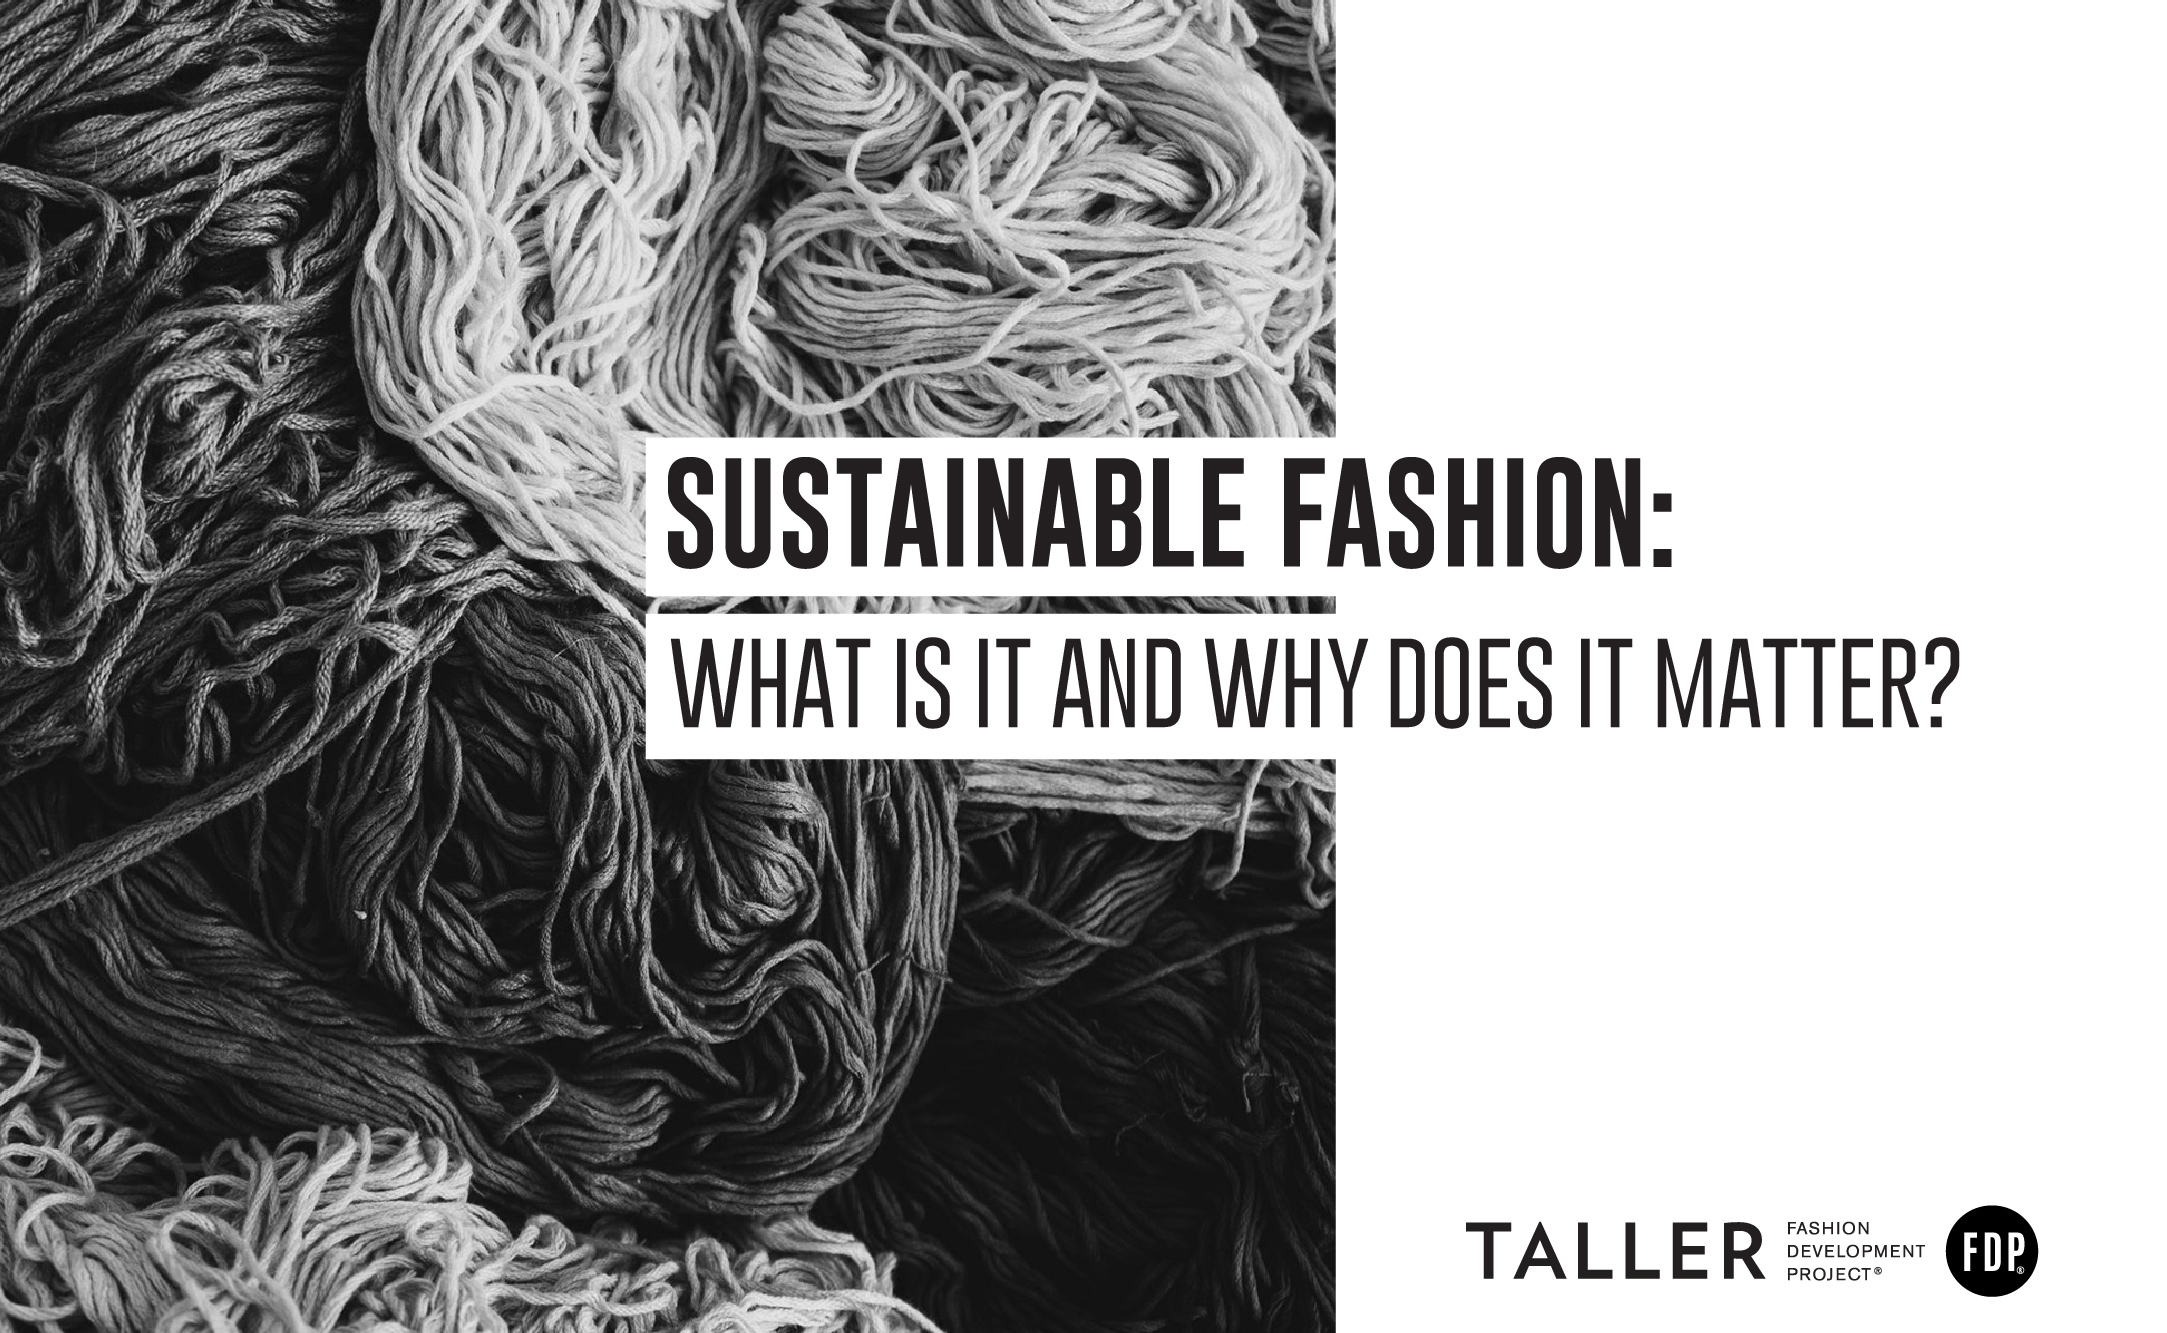 Sustainable Fashion: What is it and why does it matter?